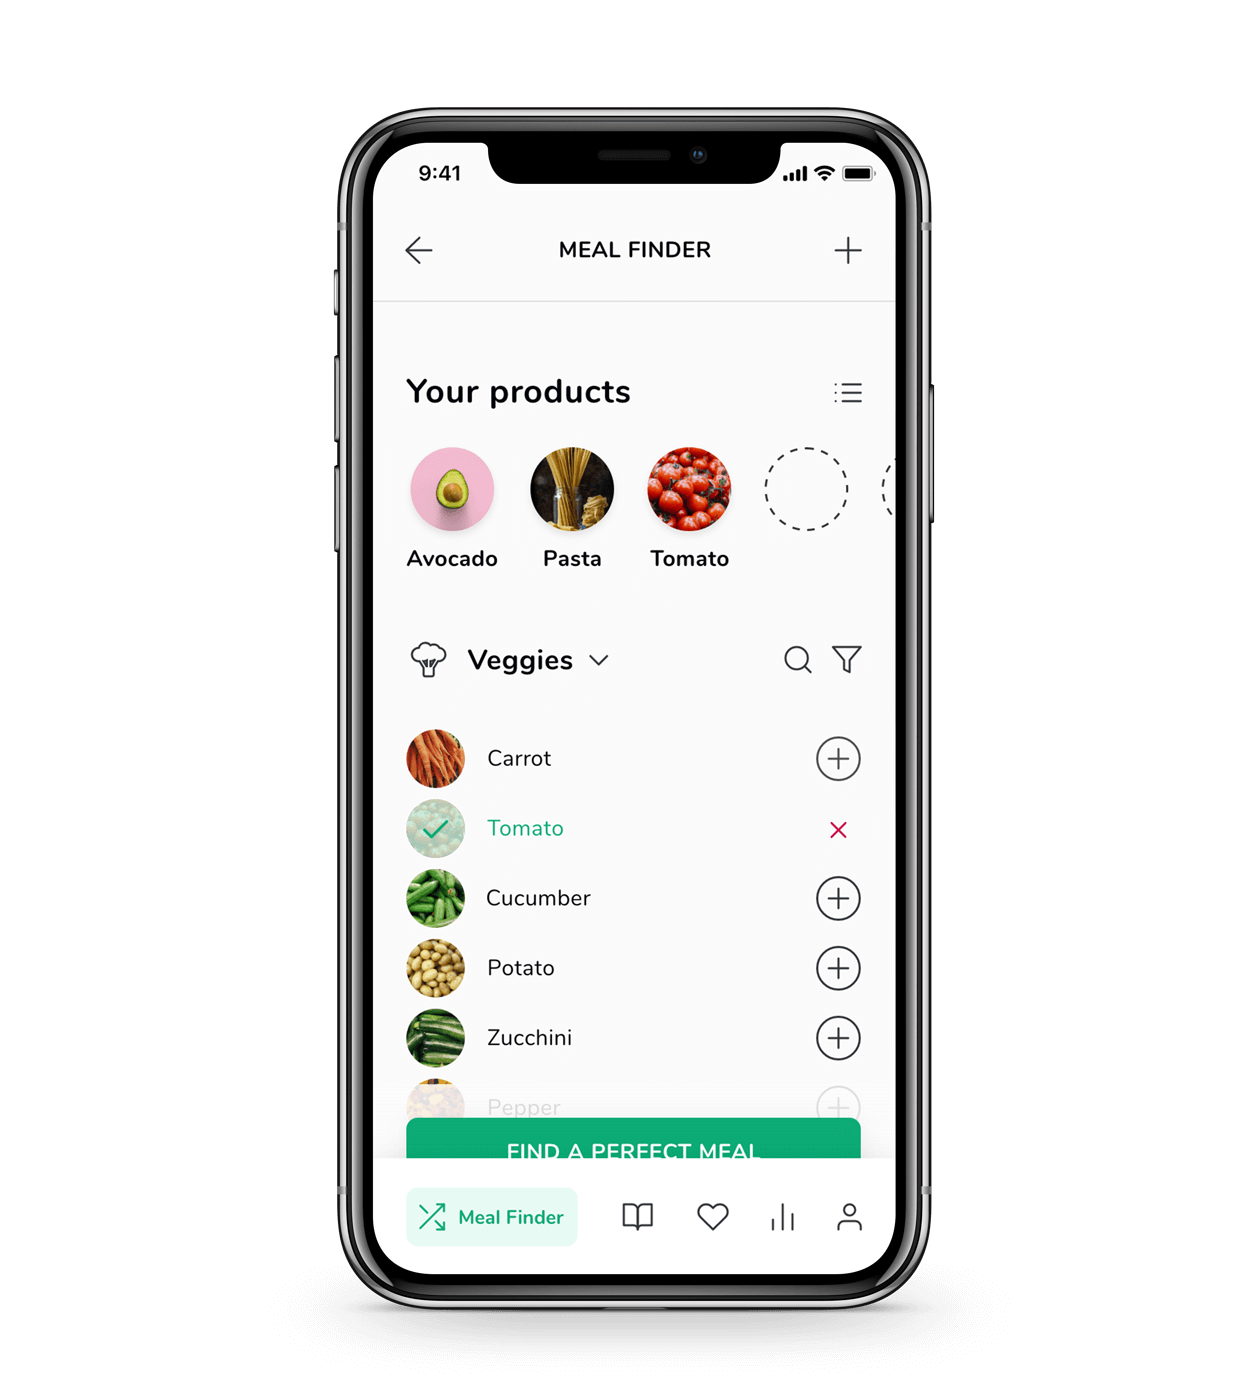 Product selection screen from WhatMeal app